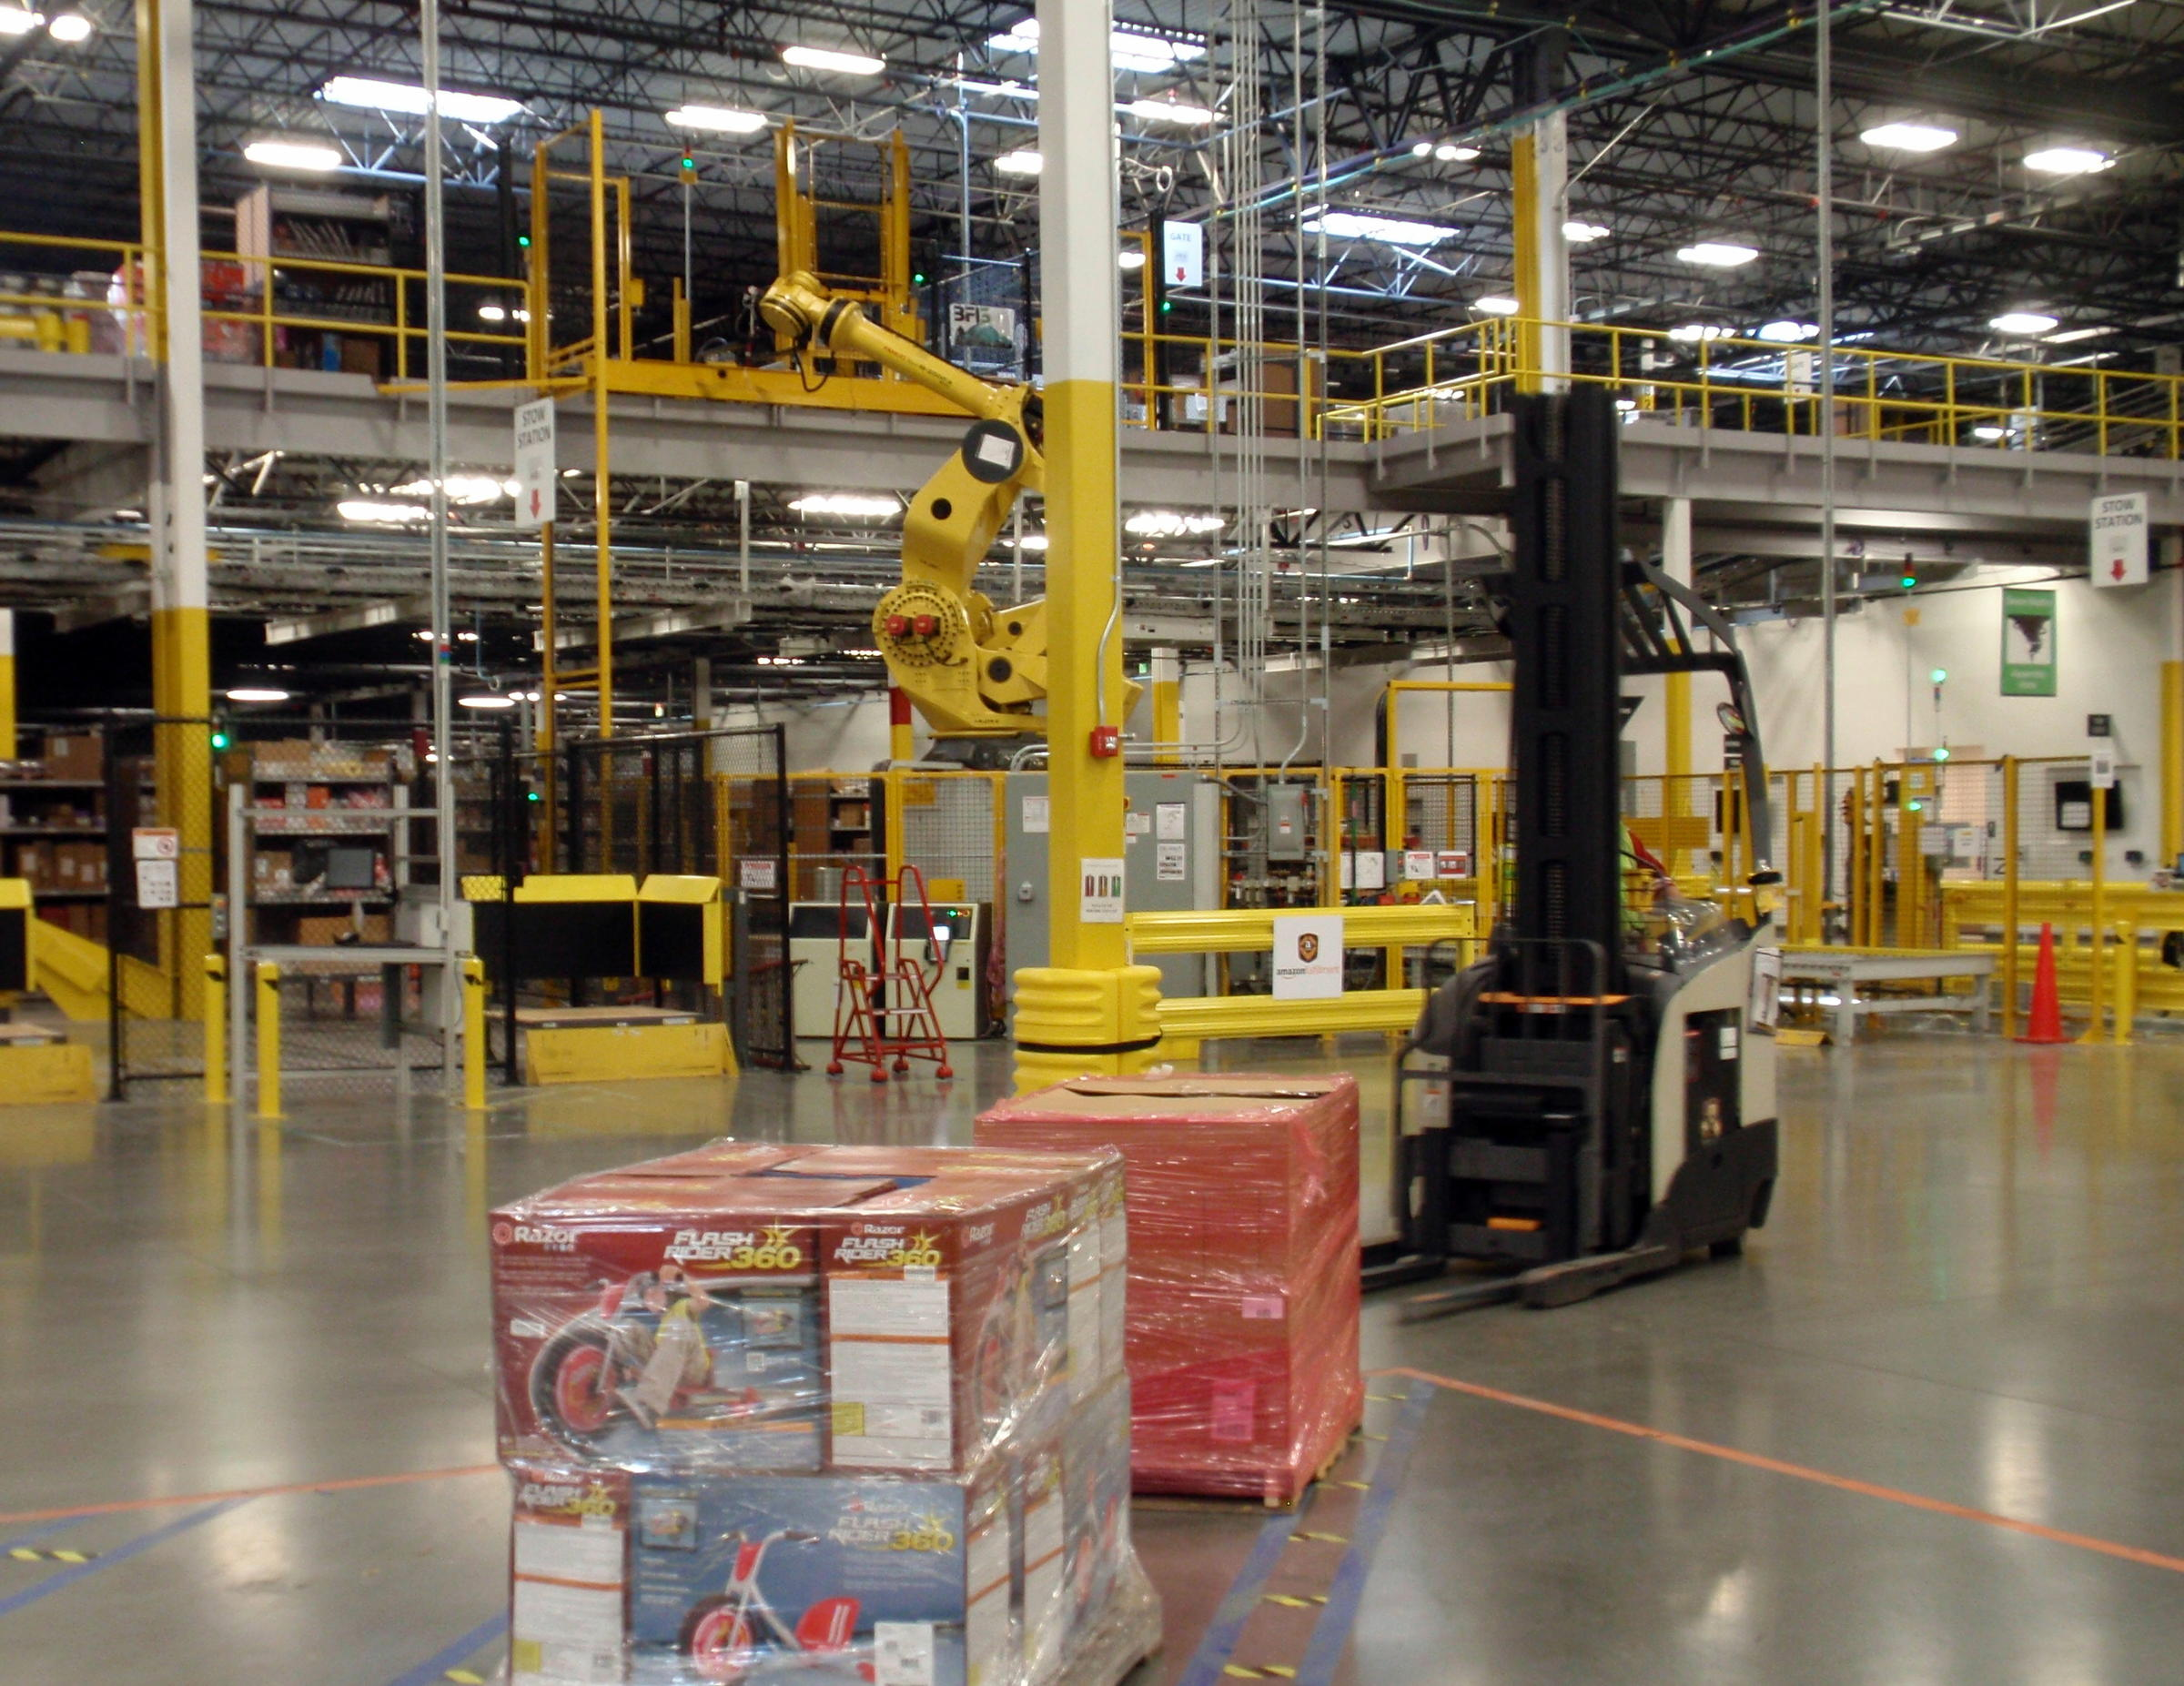 Robots Do The Walking Lifting At High Tech Amazon Com Warehouse Kuow News And Information